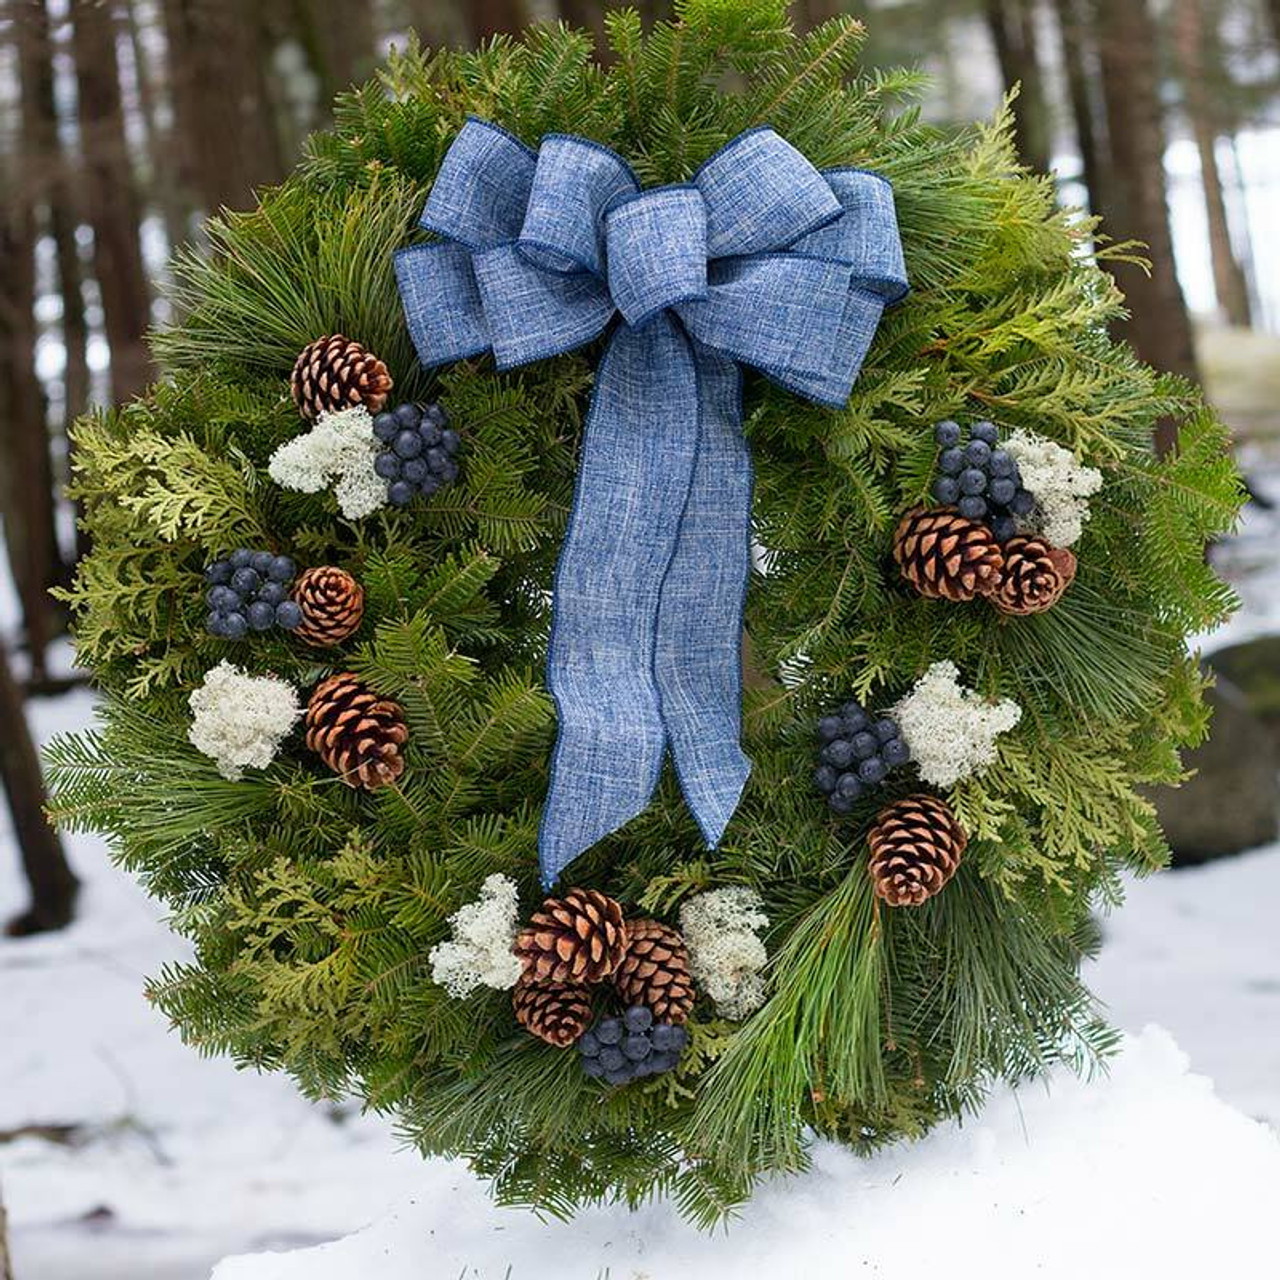 Blueberry Christmas Wreath From Maine Variegated Wreath